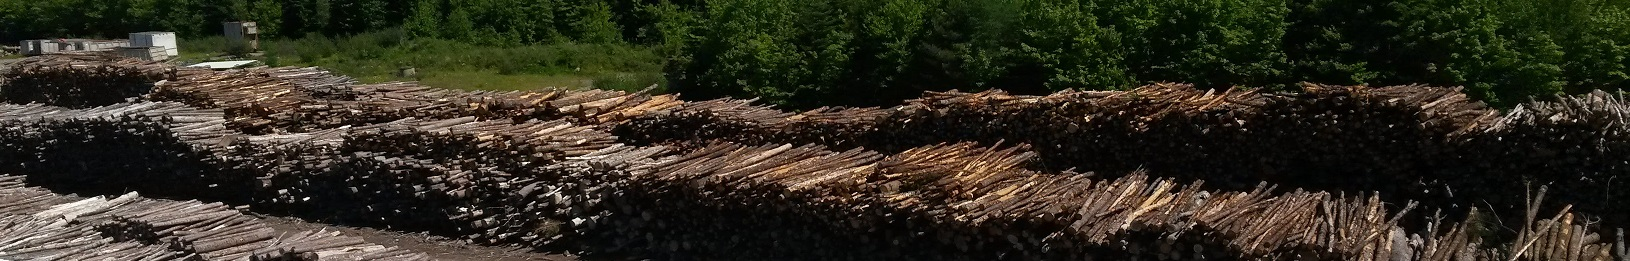 Wood piles for biomass - cropped